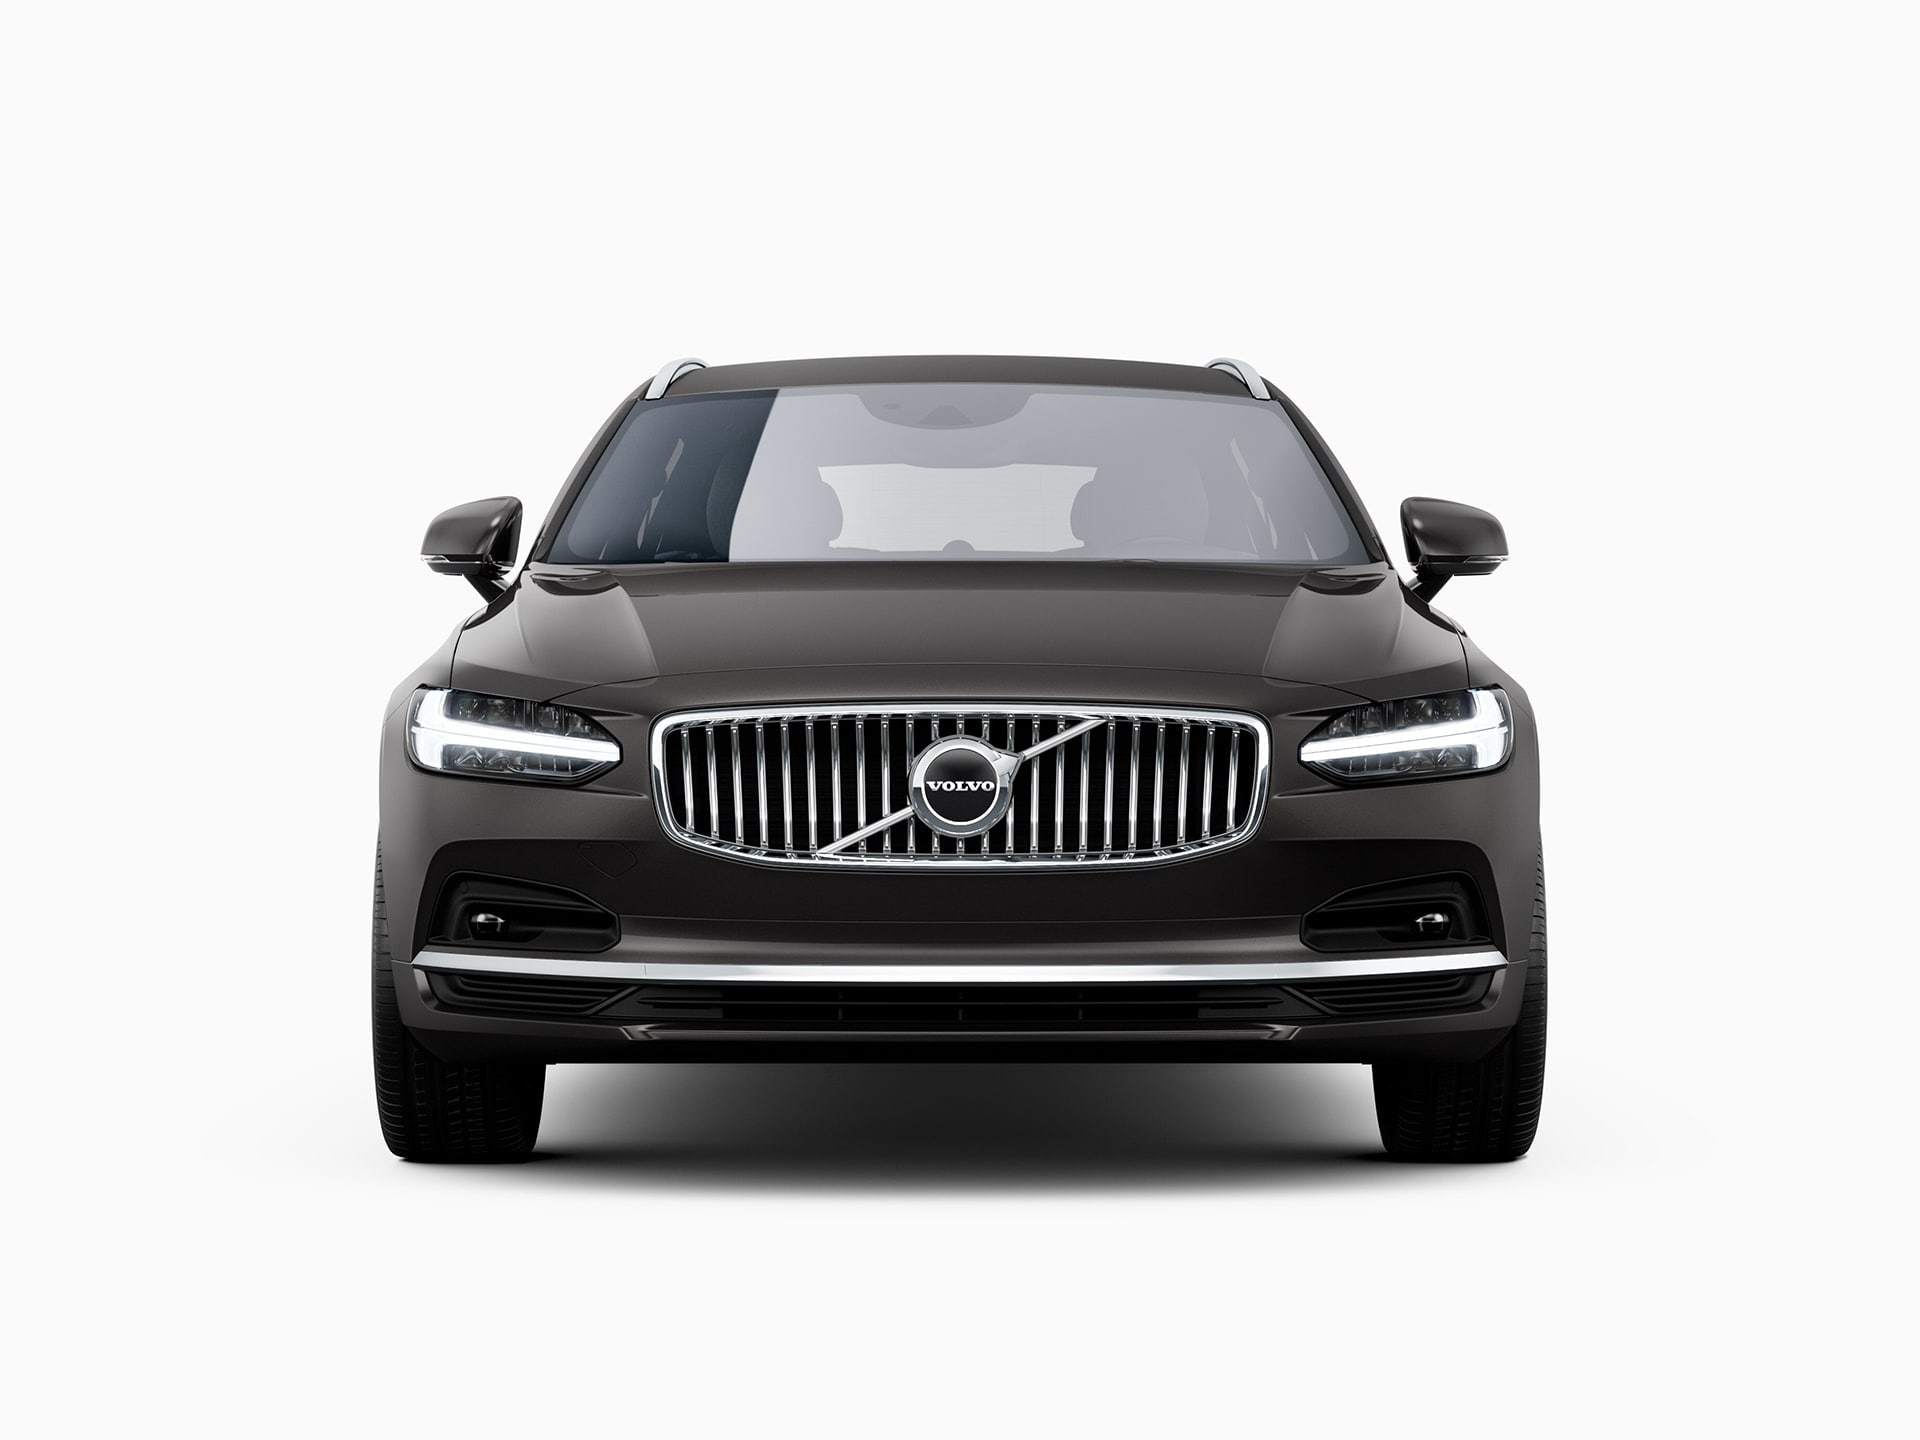 The front of a Volvo V90.